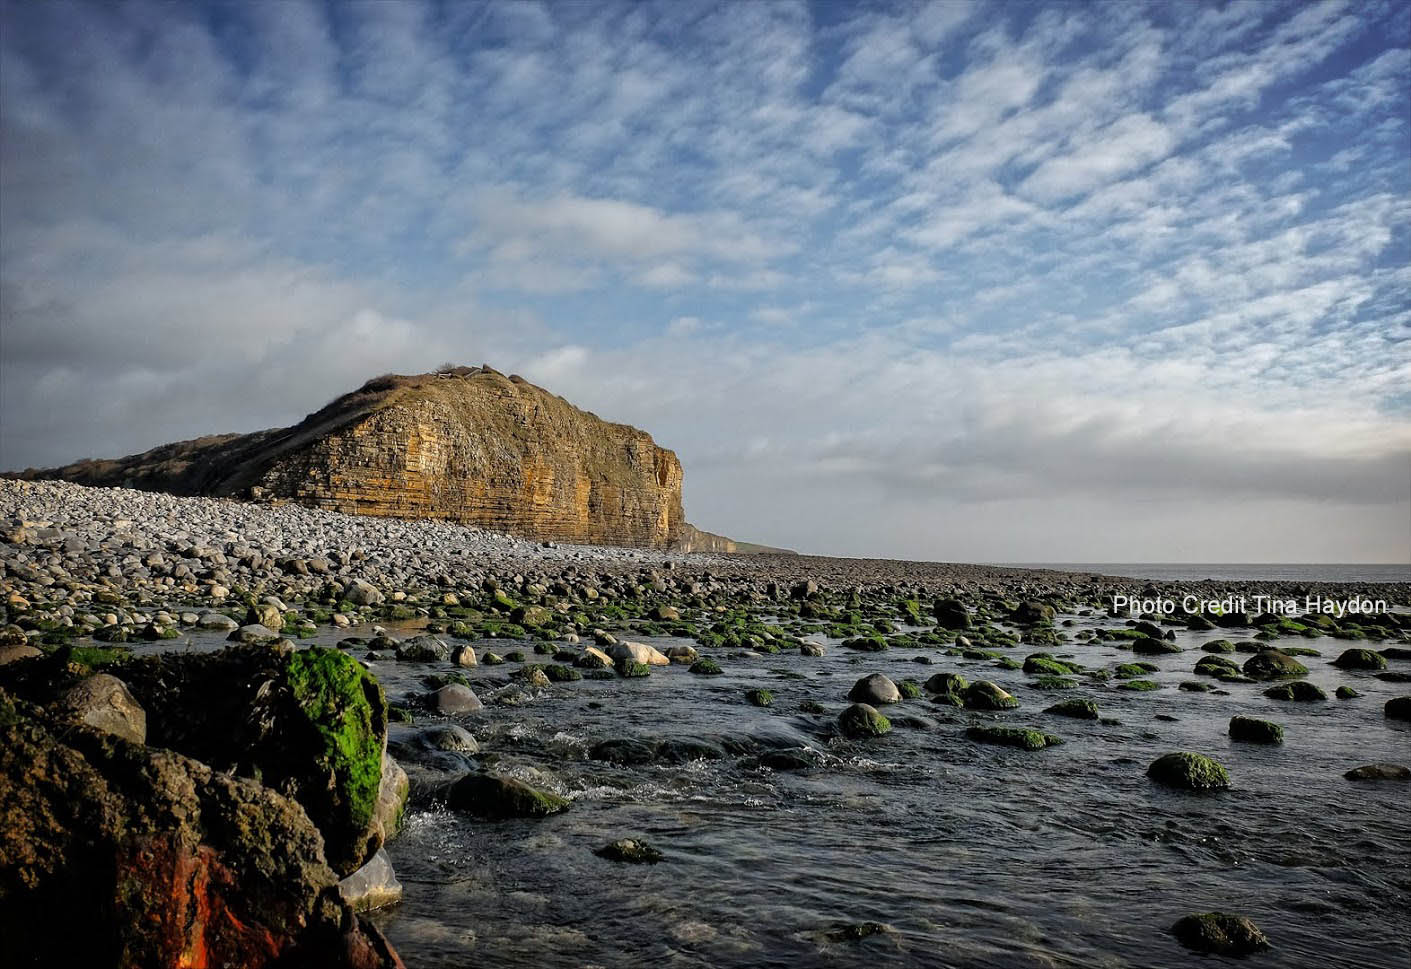 Llantwit Major Beach (Cwm Colhuw)